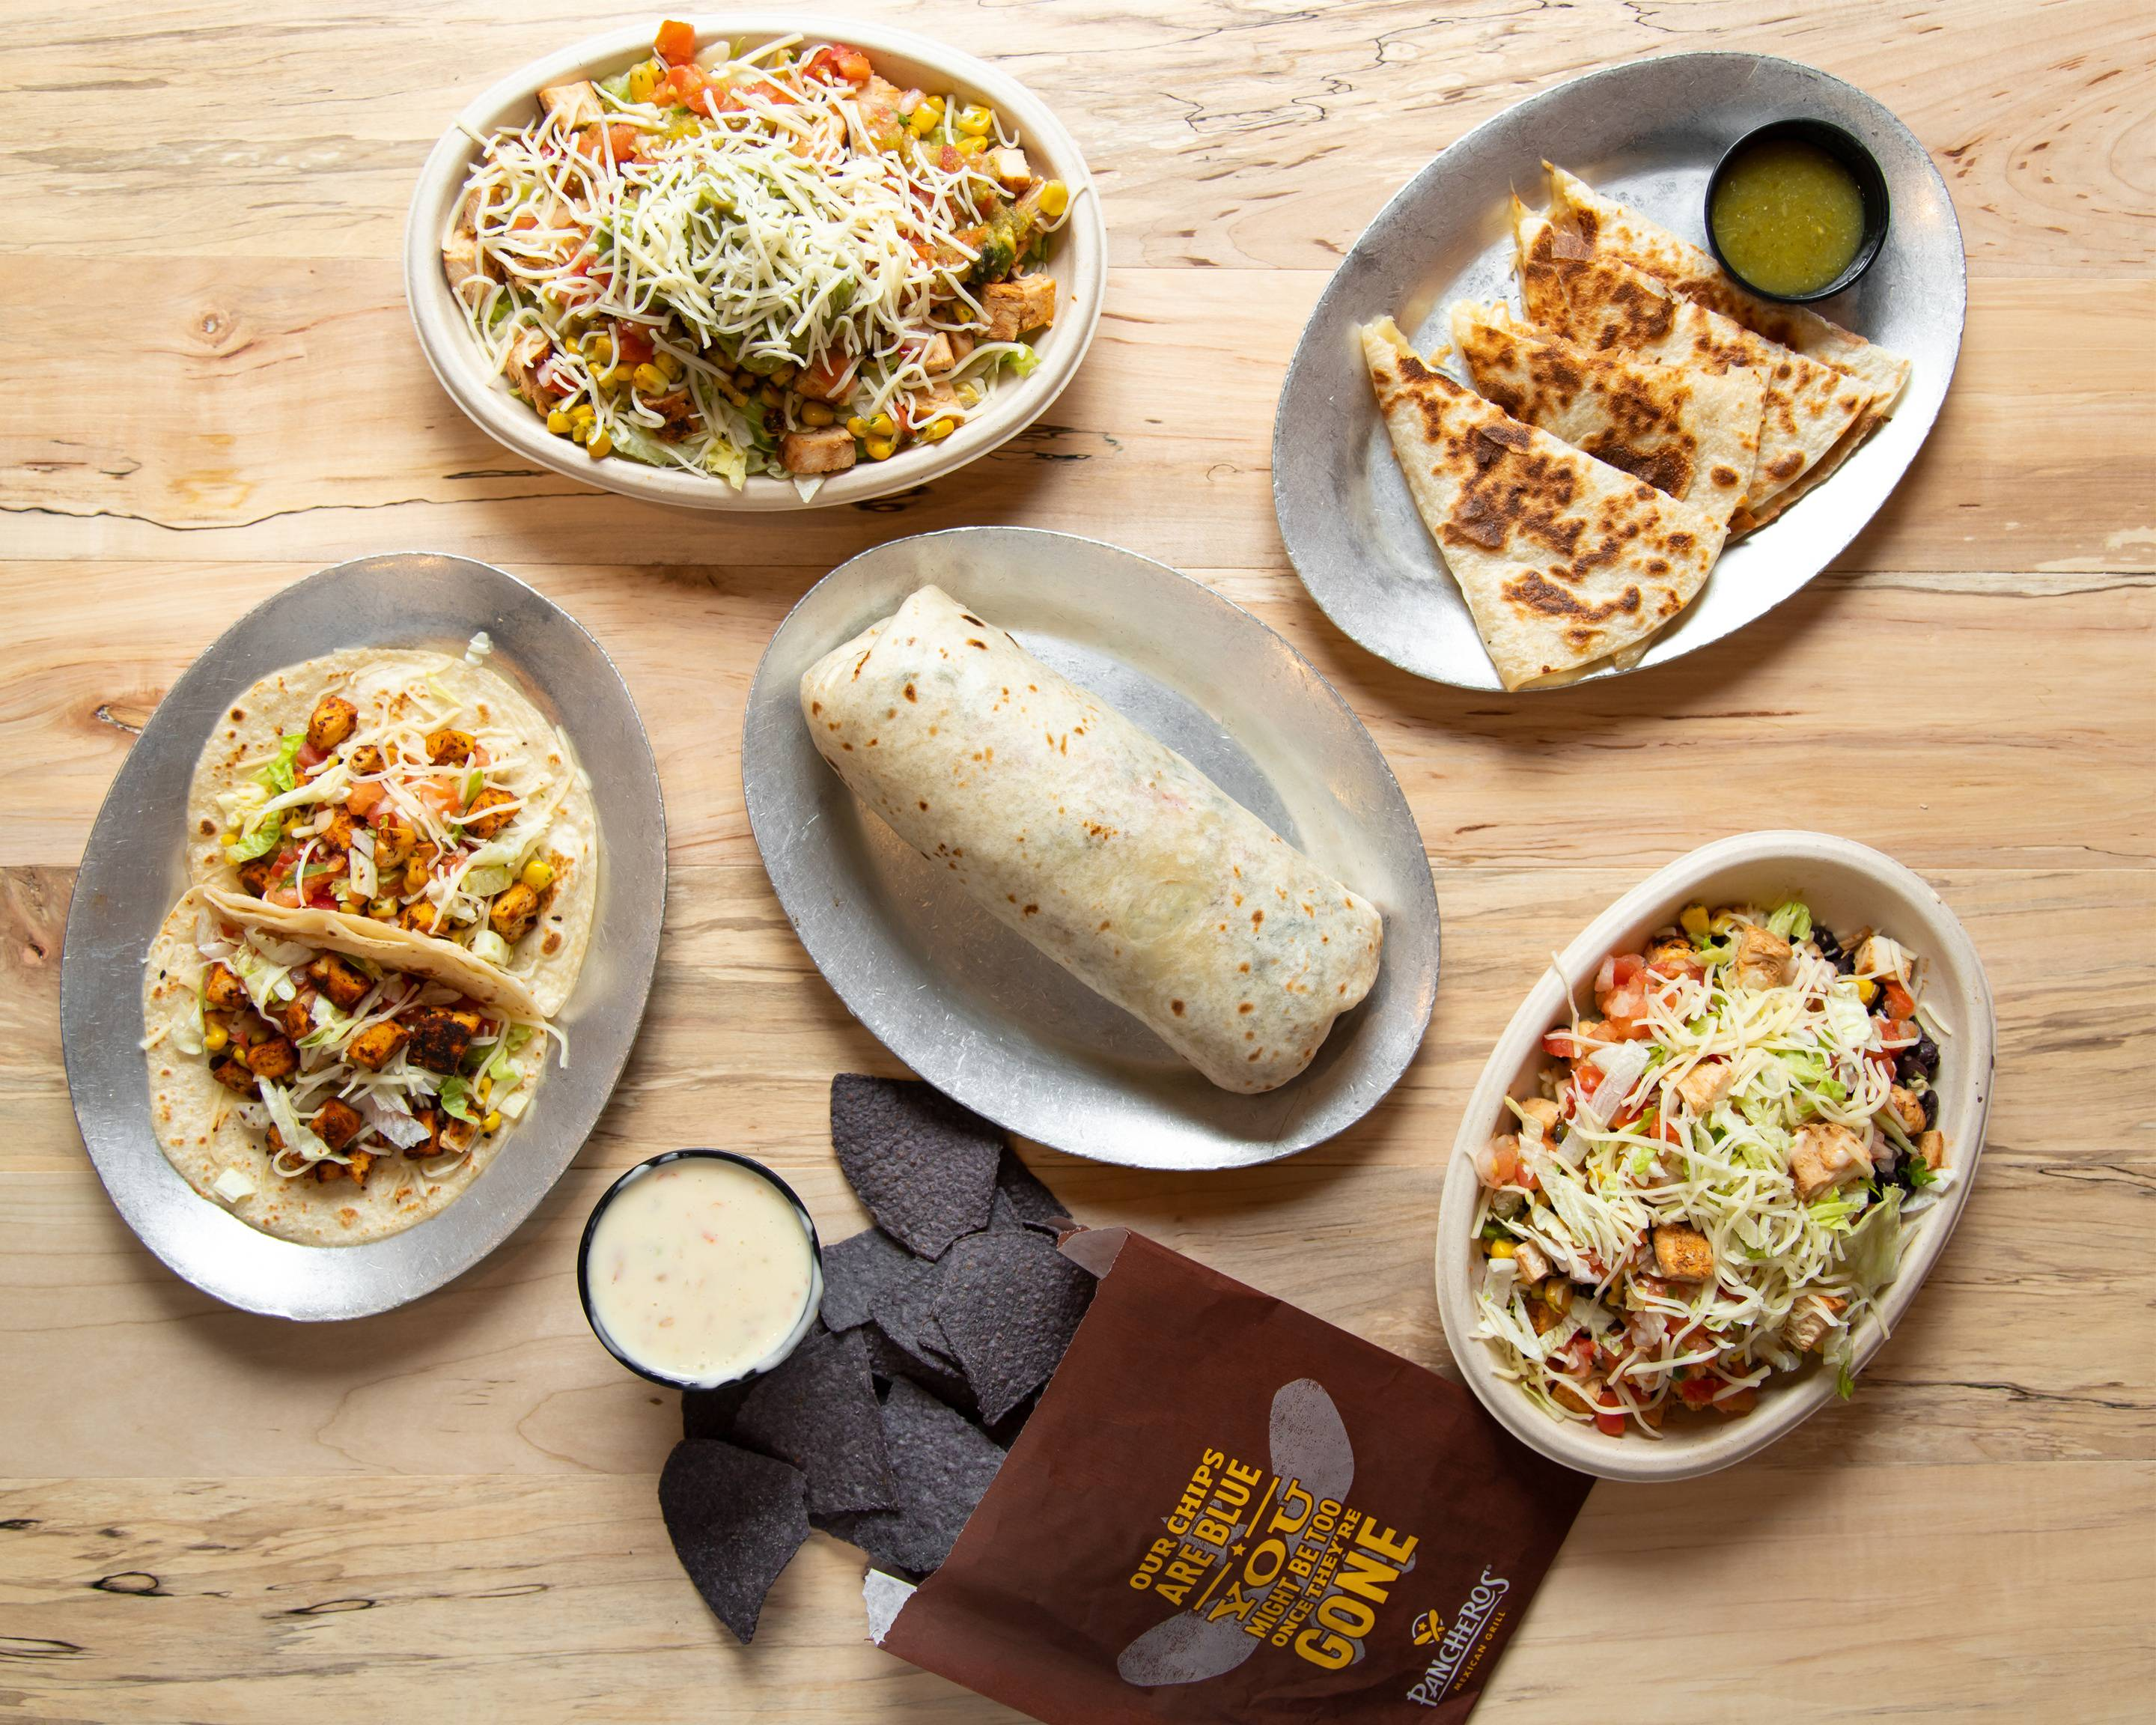 Pancheros Mexican Grill (3552 Meridian Crossing)